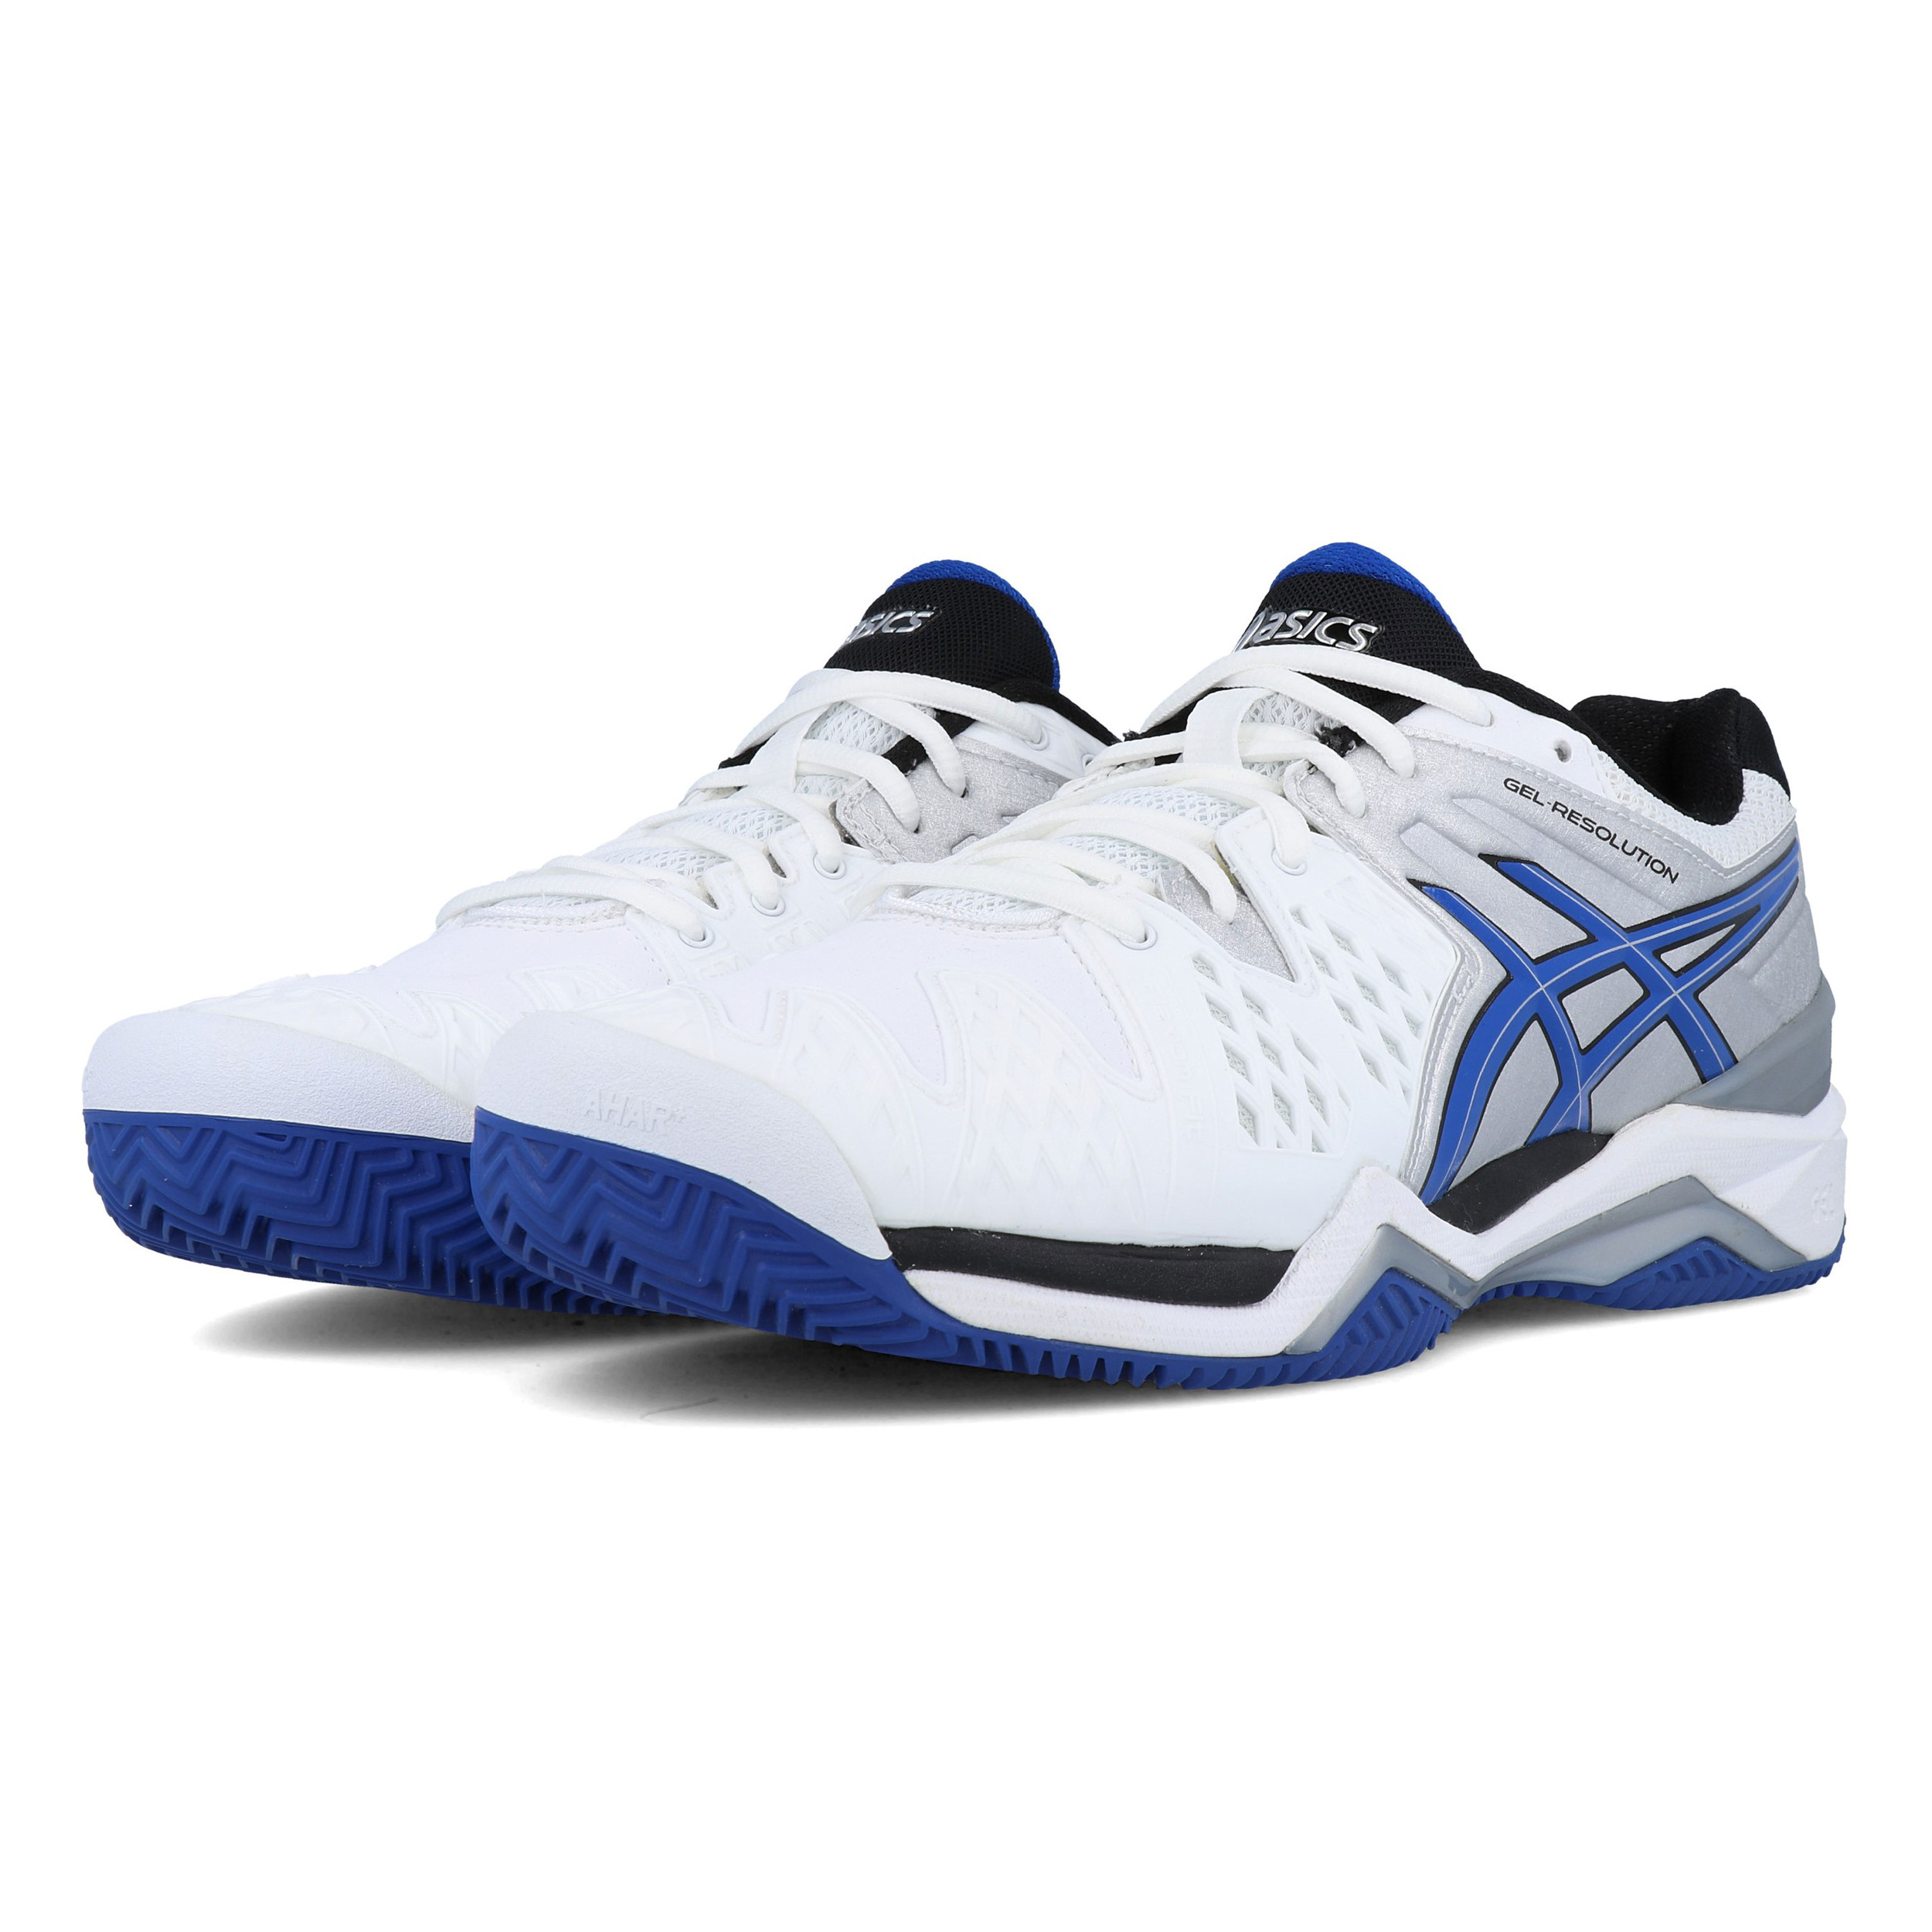 Details about Asics Mens Gel-Resolution 6 Clay Court Tennis Shoes White  Sports Breathable